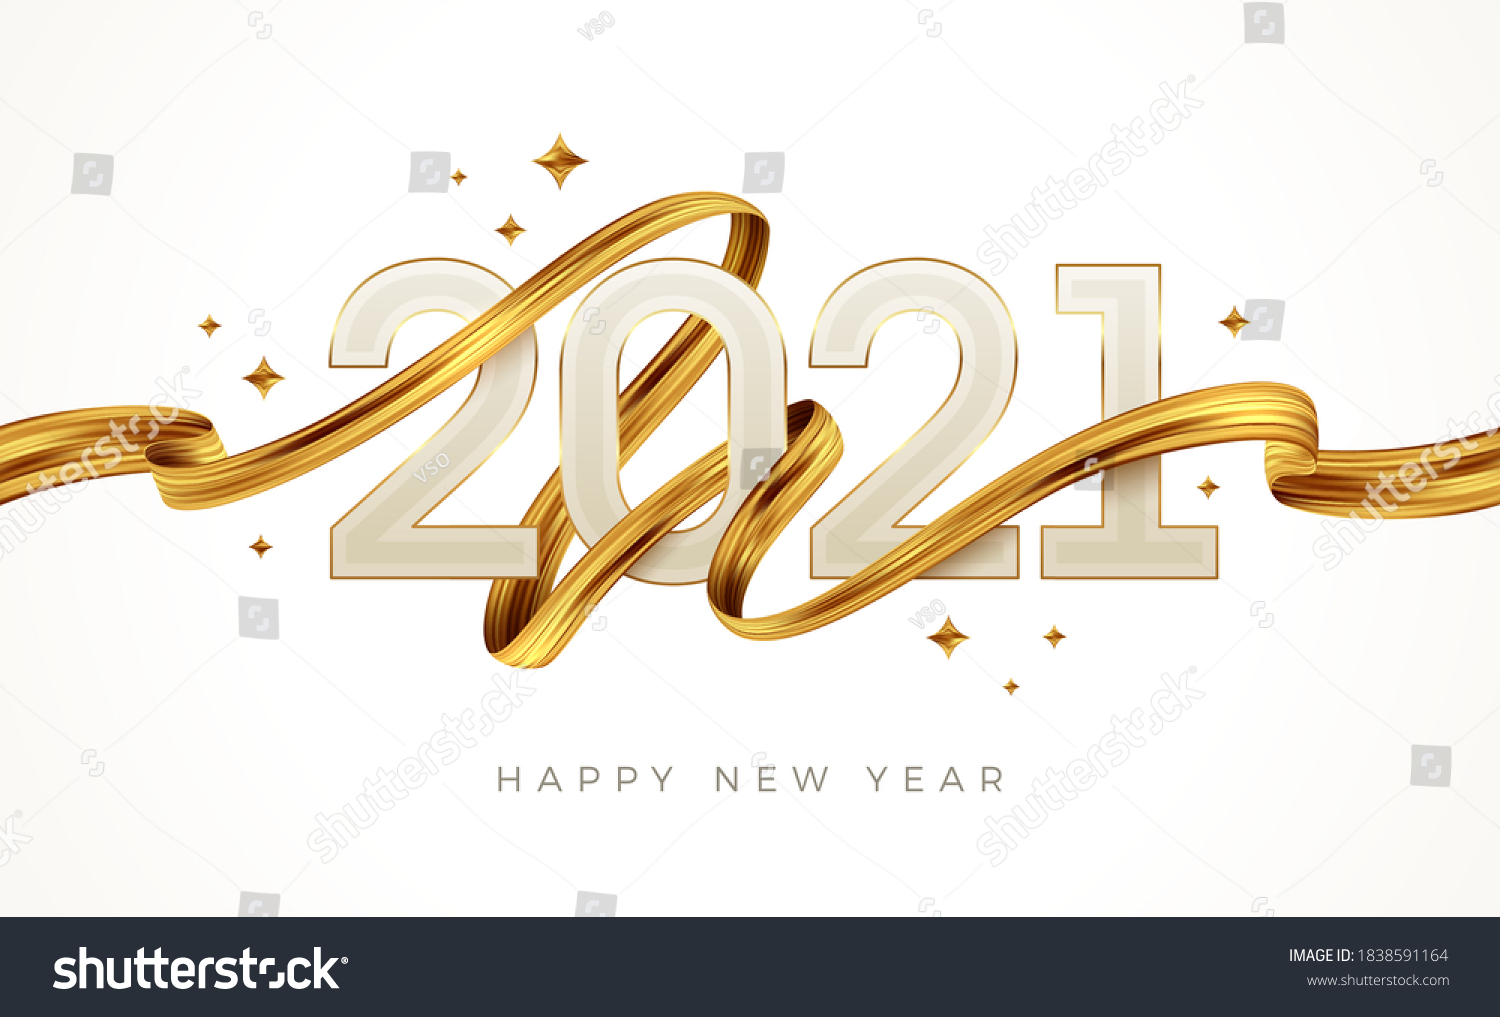 2021 New Year  logo with golden paint brushstroke..   New Year sign with golden ribbon. Vector illustration. #1838591164